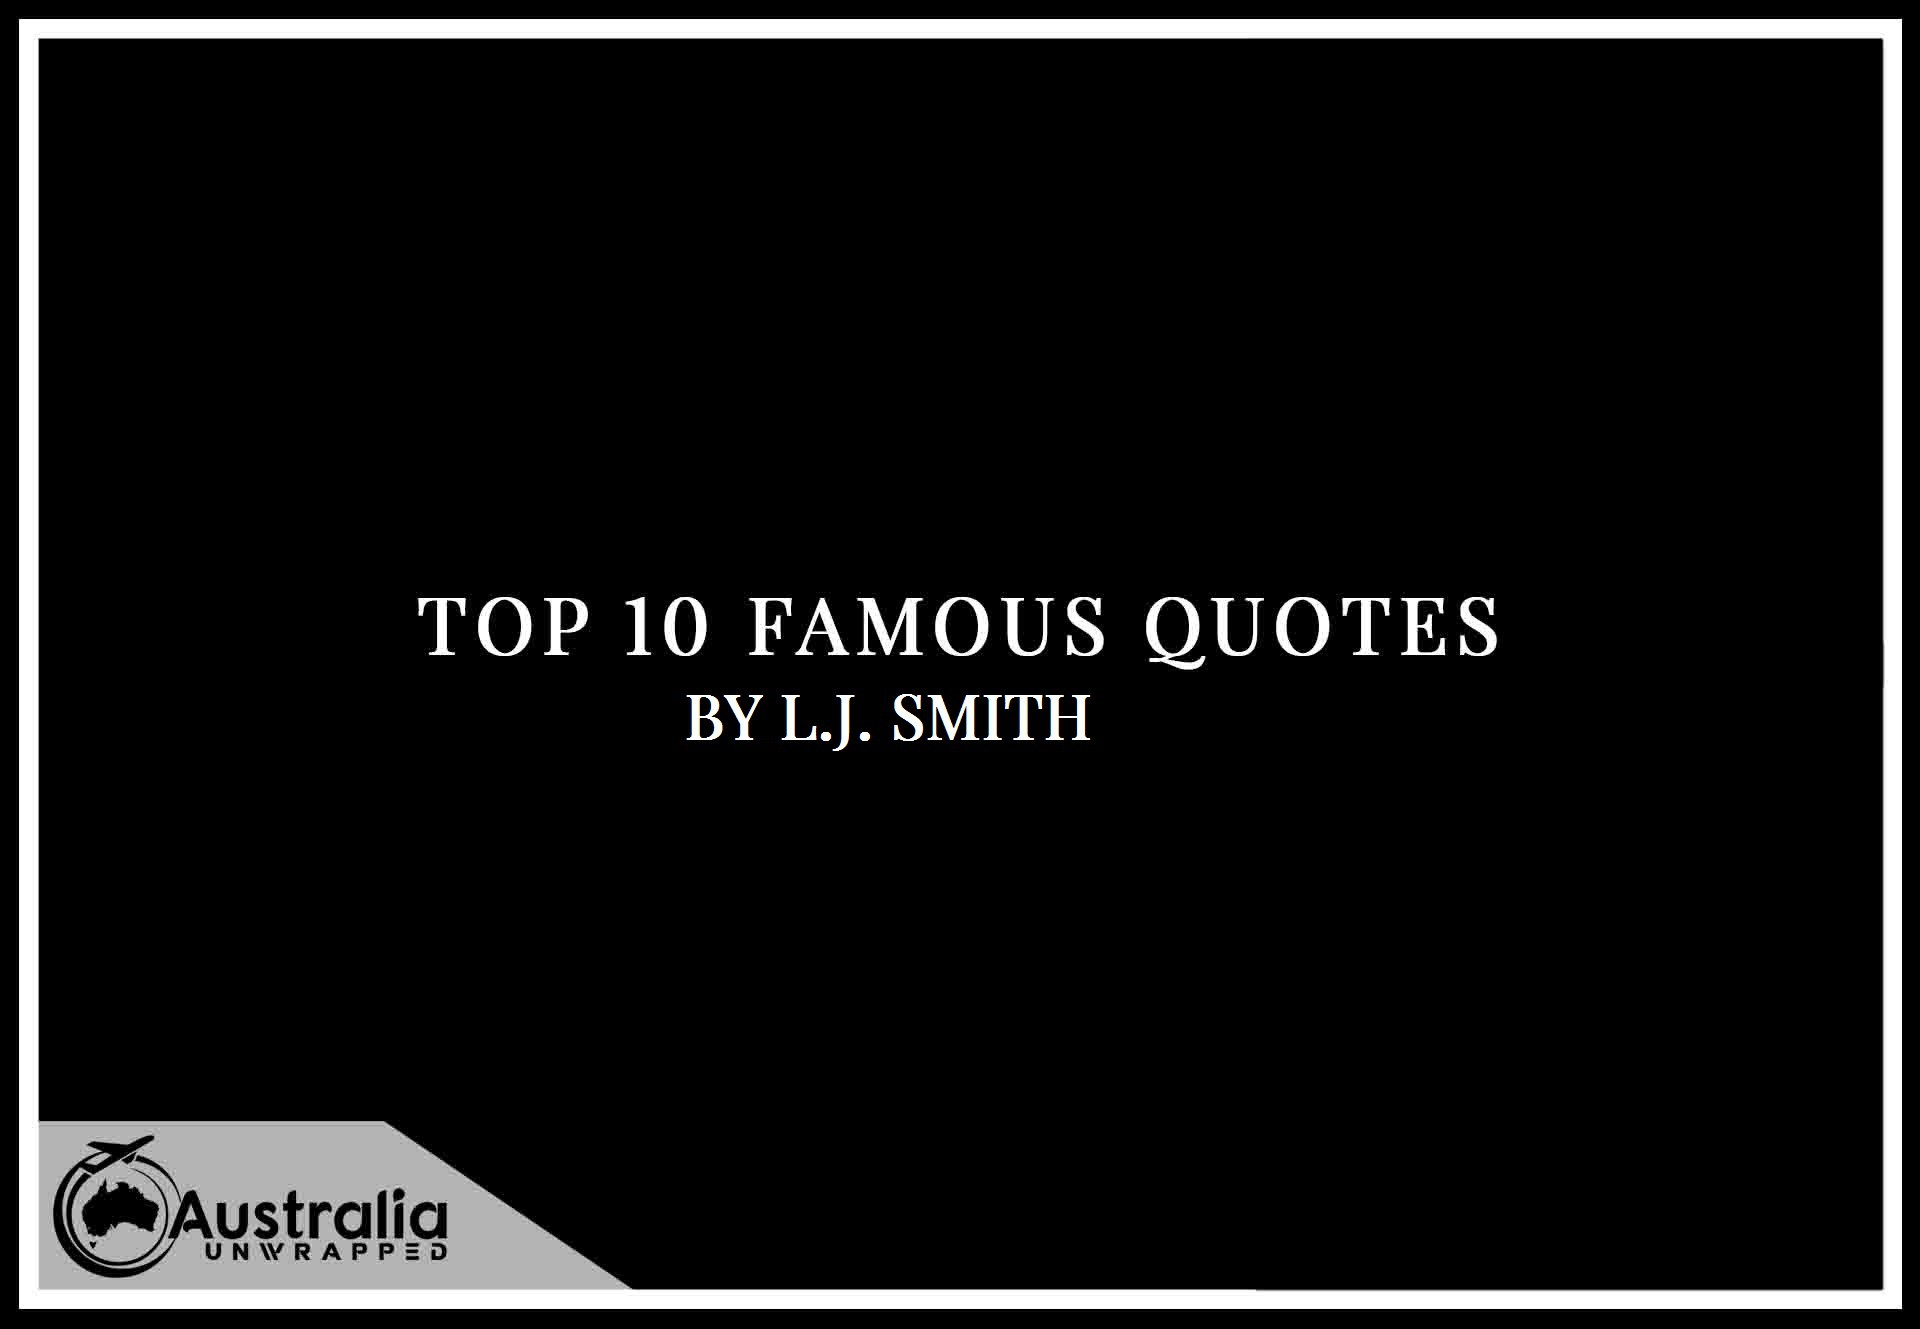 L.J. Smith's Top 10 Popular and Famous Quotes